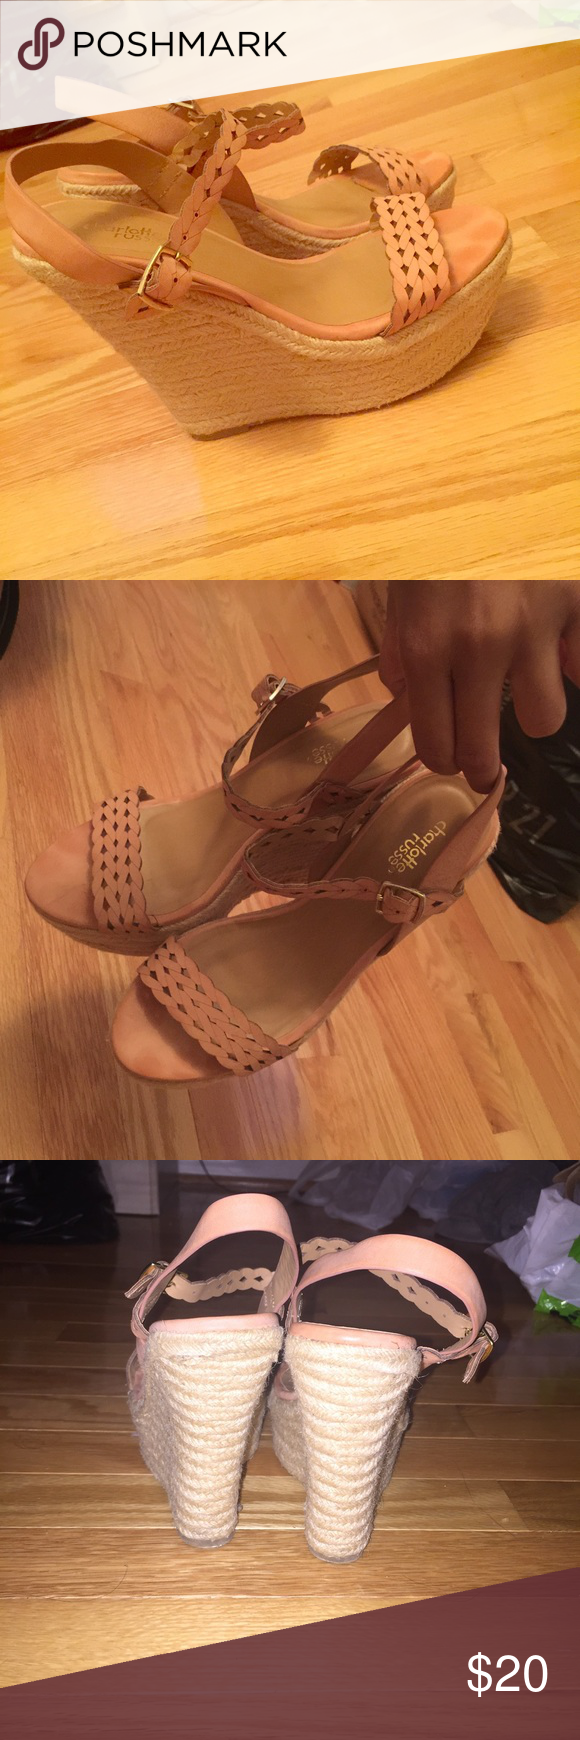 Pink wedges Only worn twice -- Cute, Comfortable fit Charlotte Russe Shoes Wedges